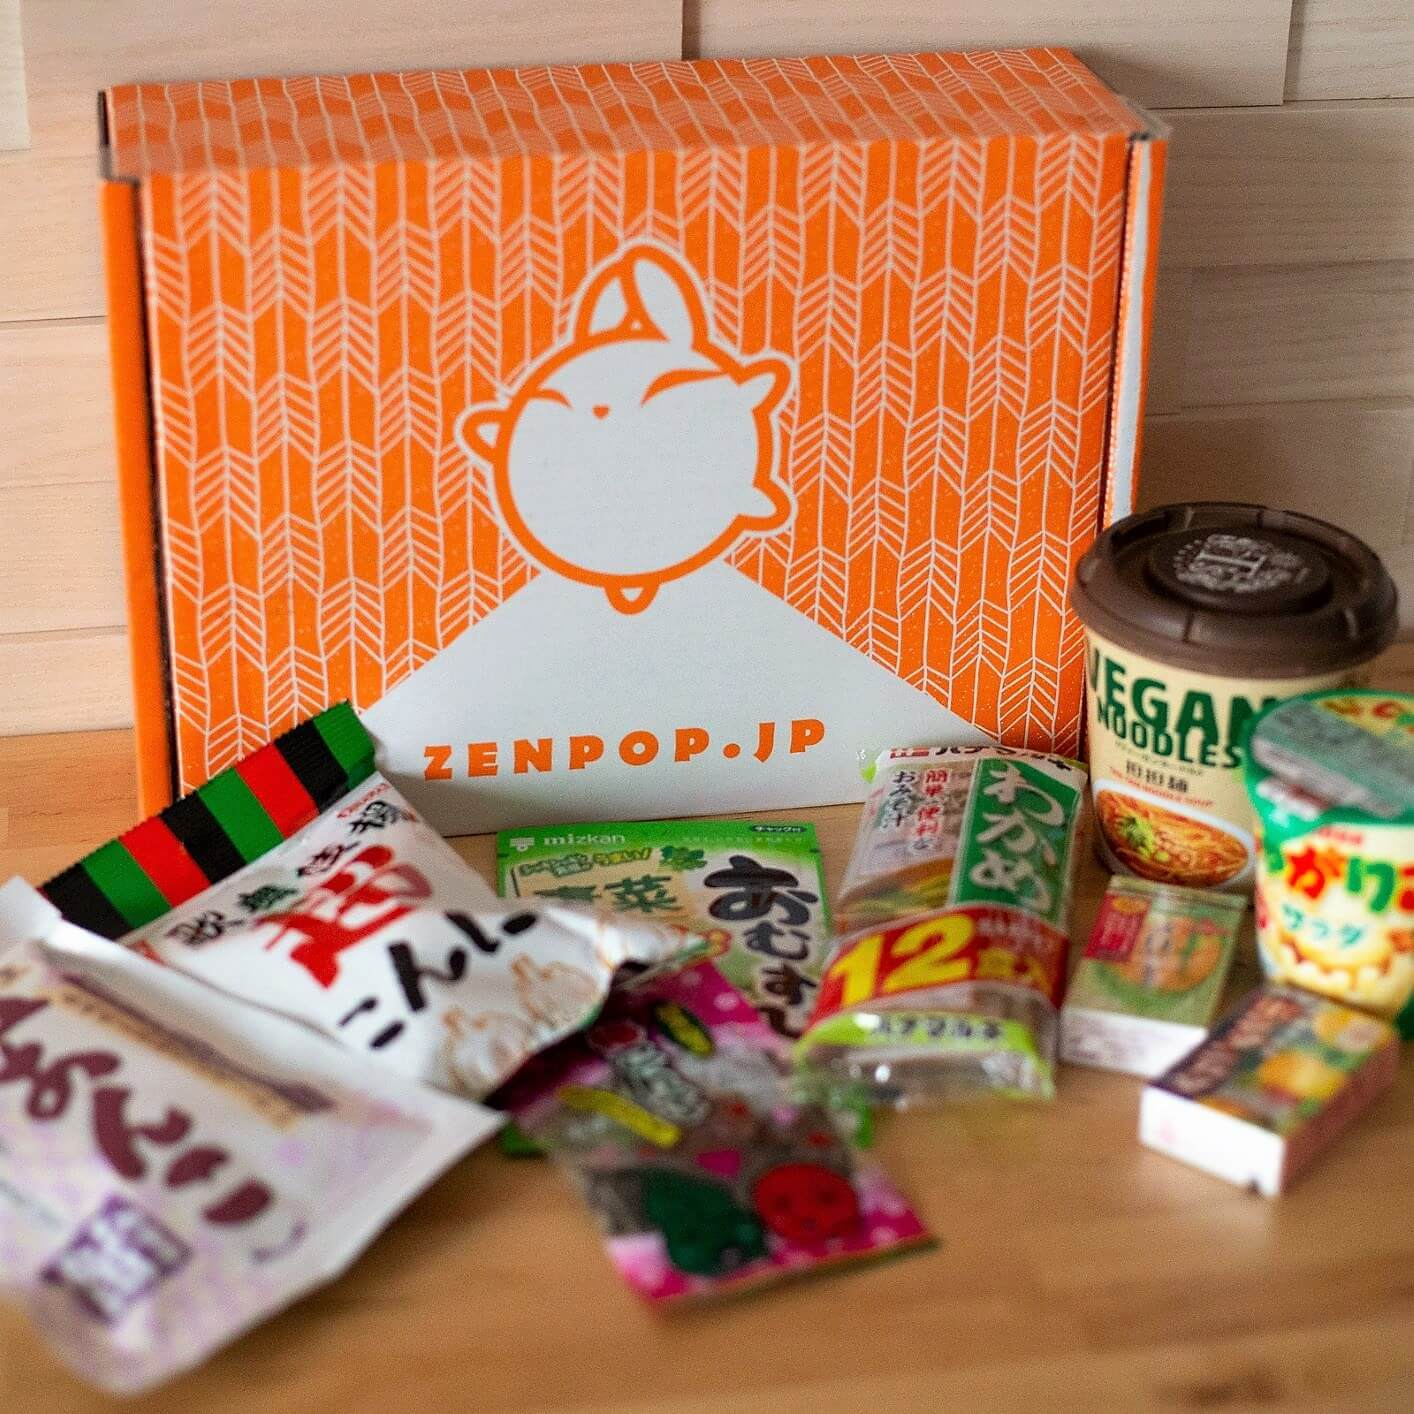 ZenPop's Limited Edition Vegetarian Snack Pack